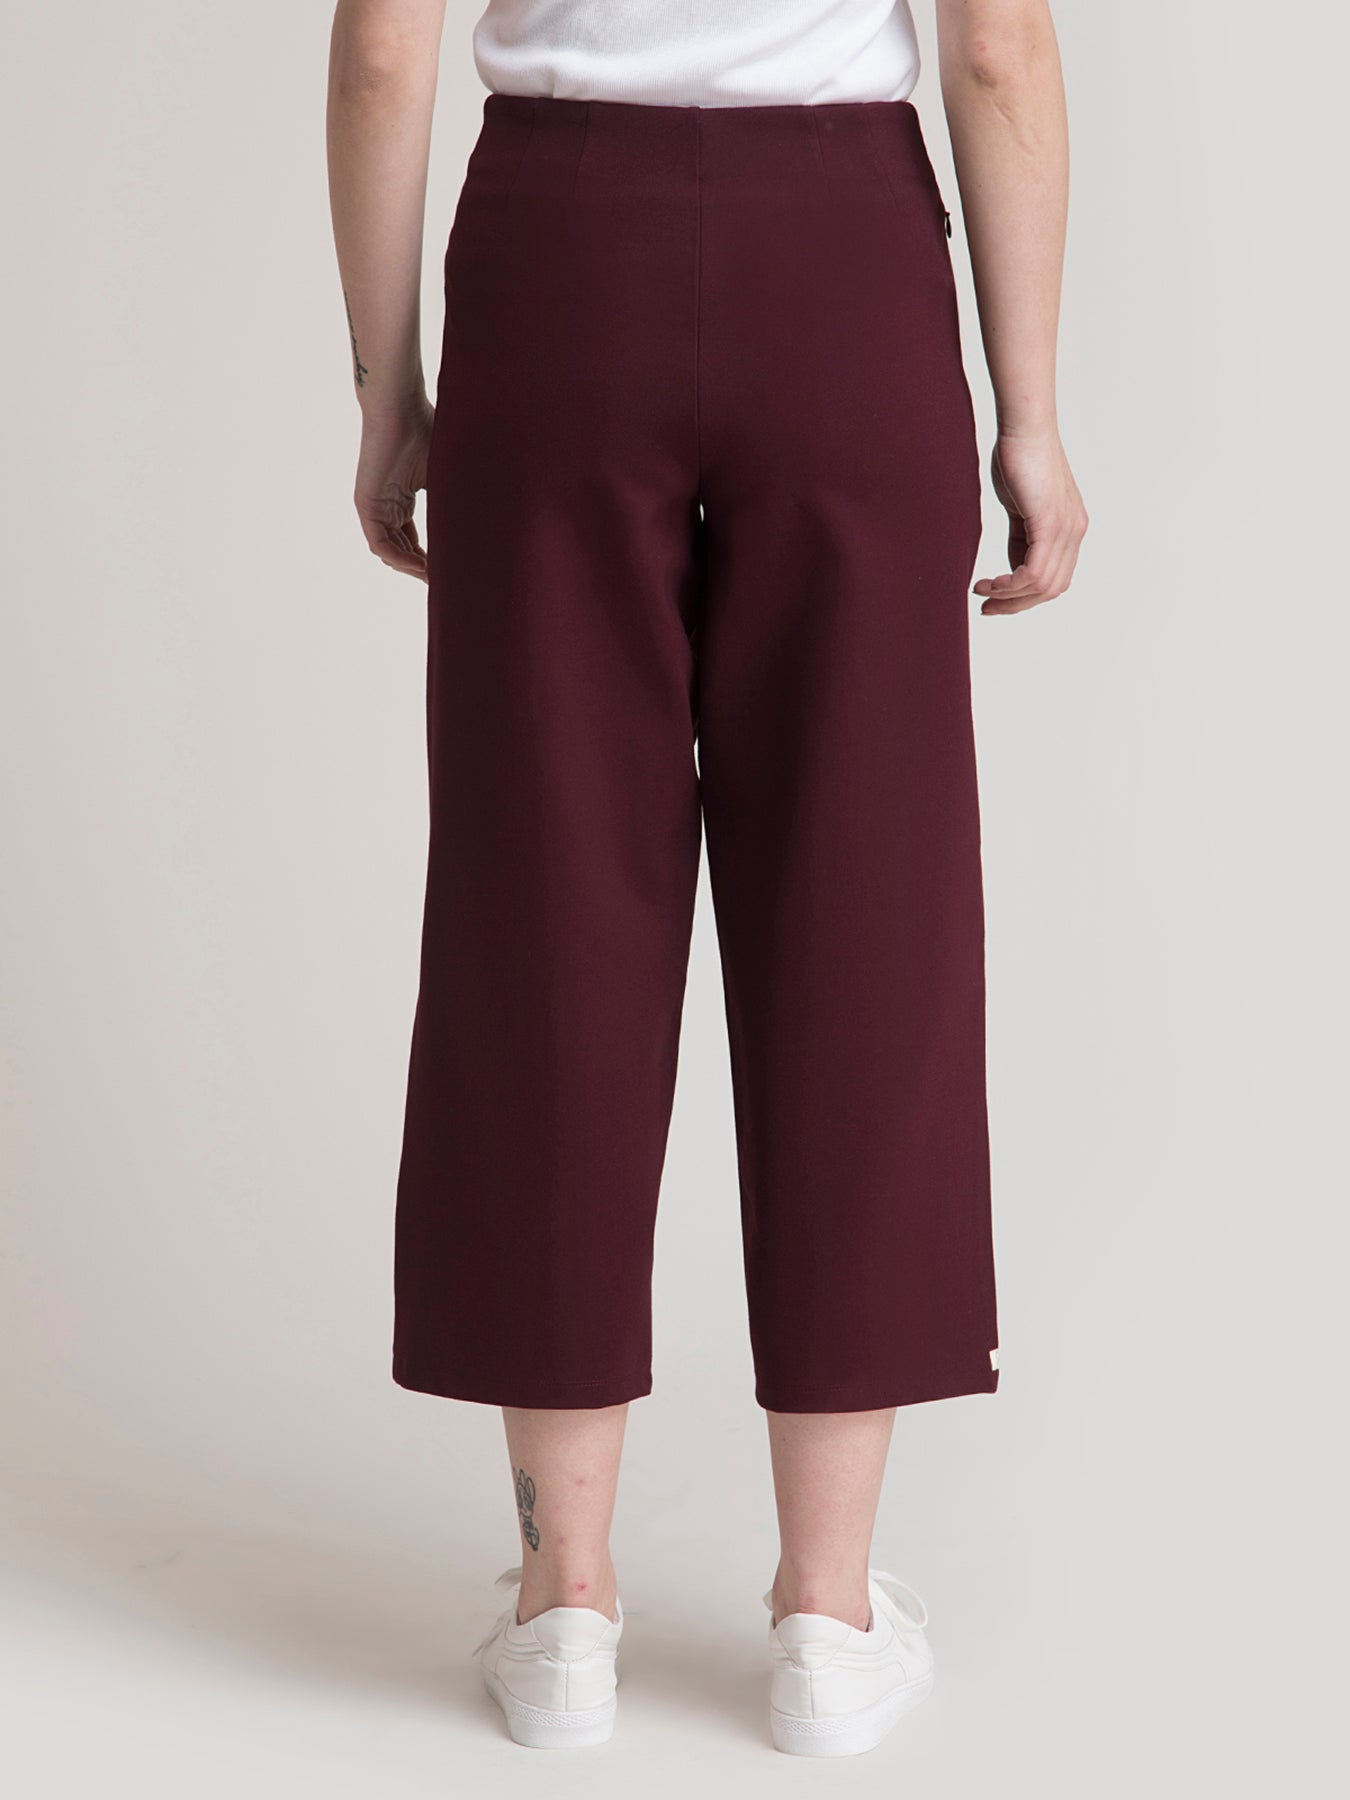 Stretchable LivIn Culottes - Pack of 2